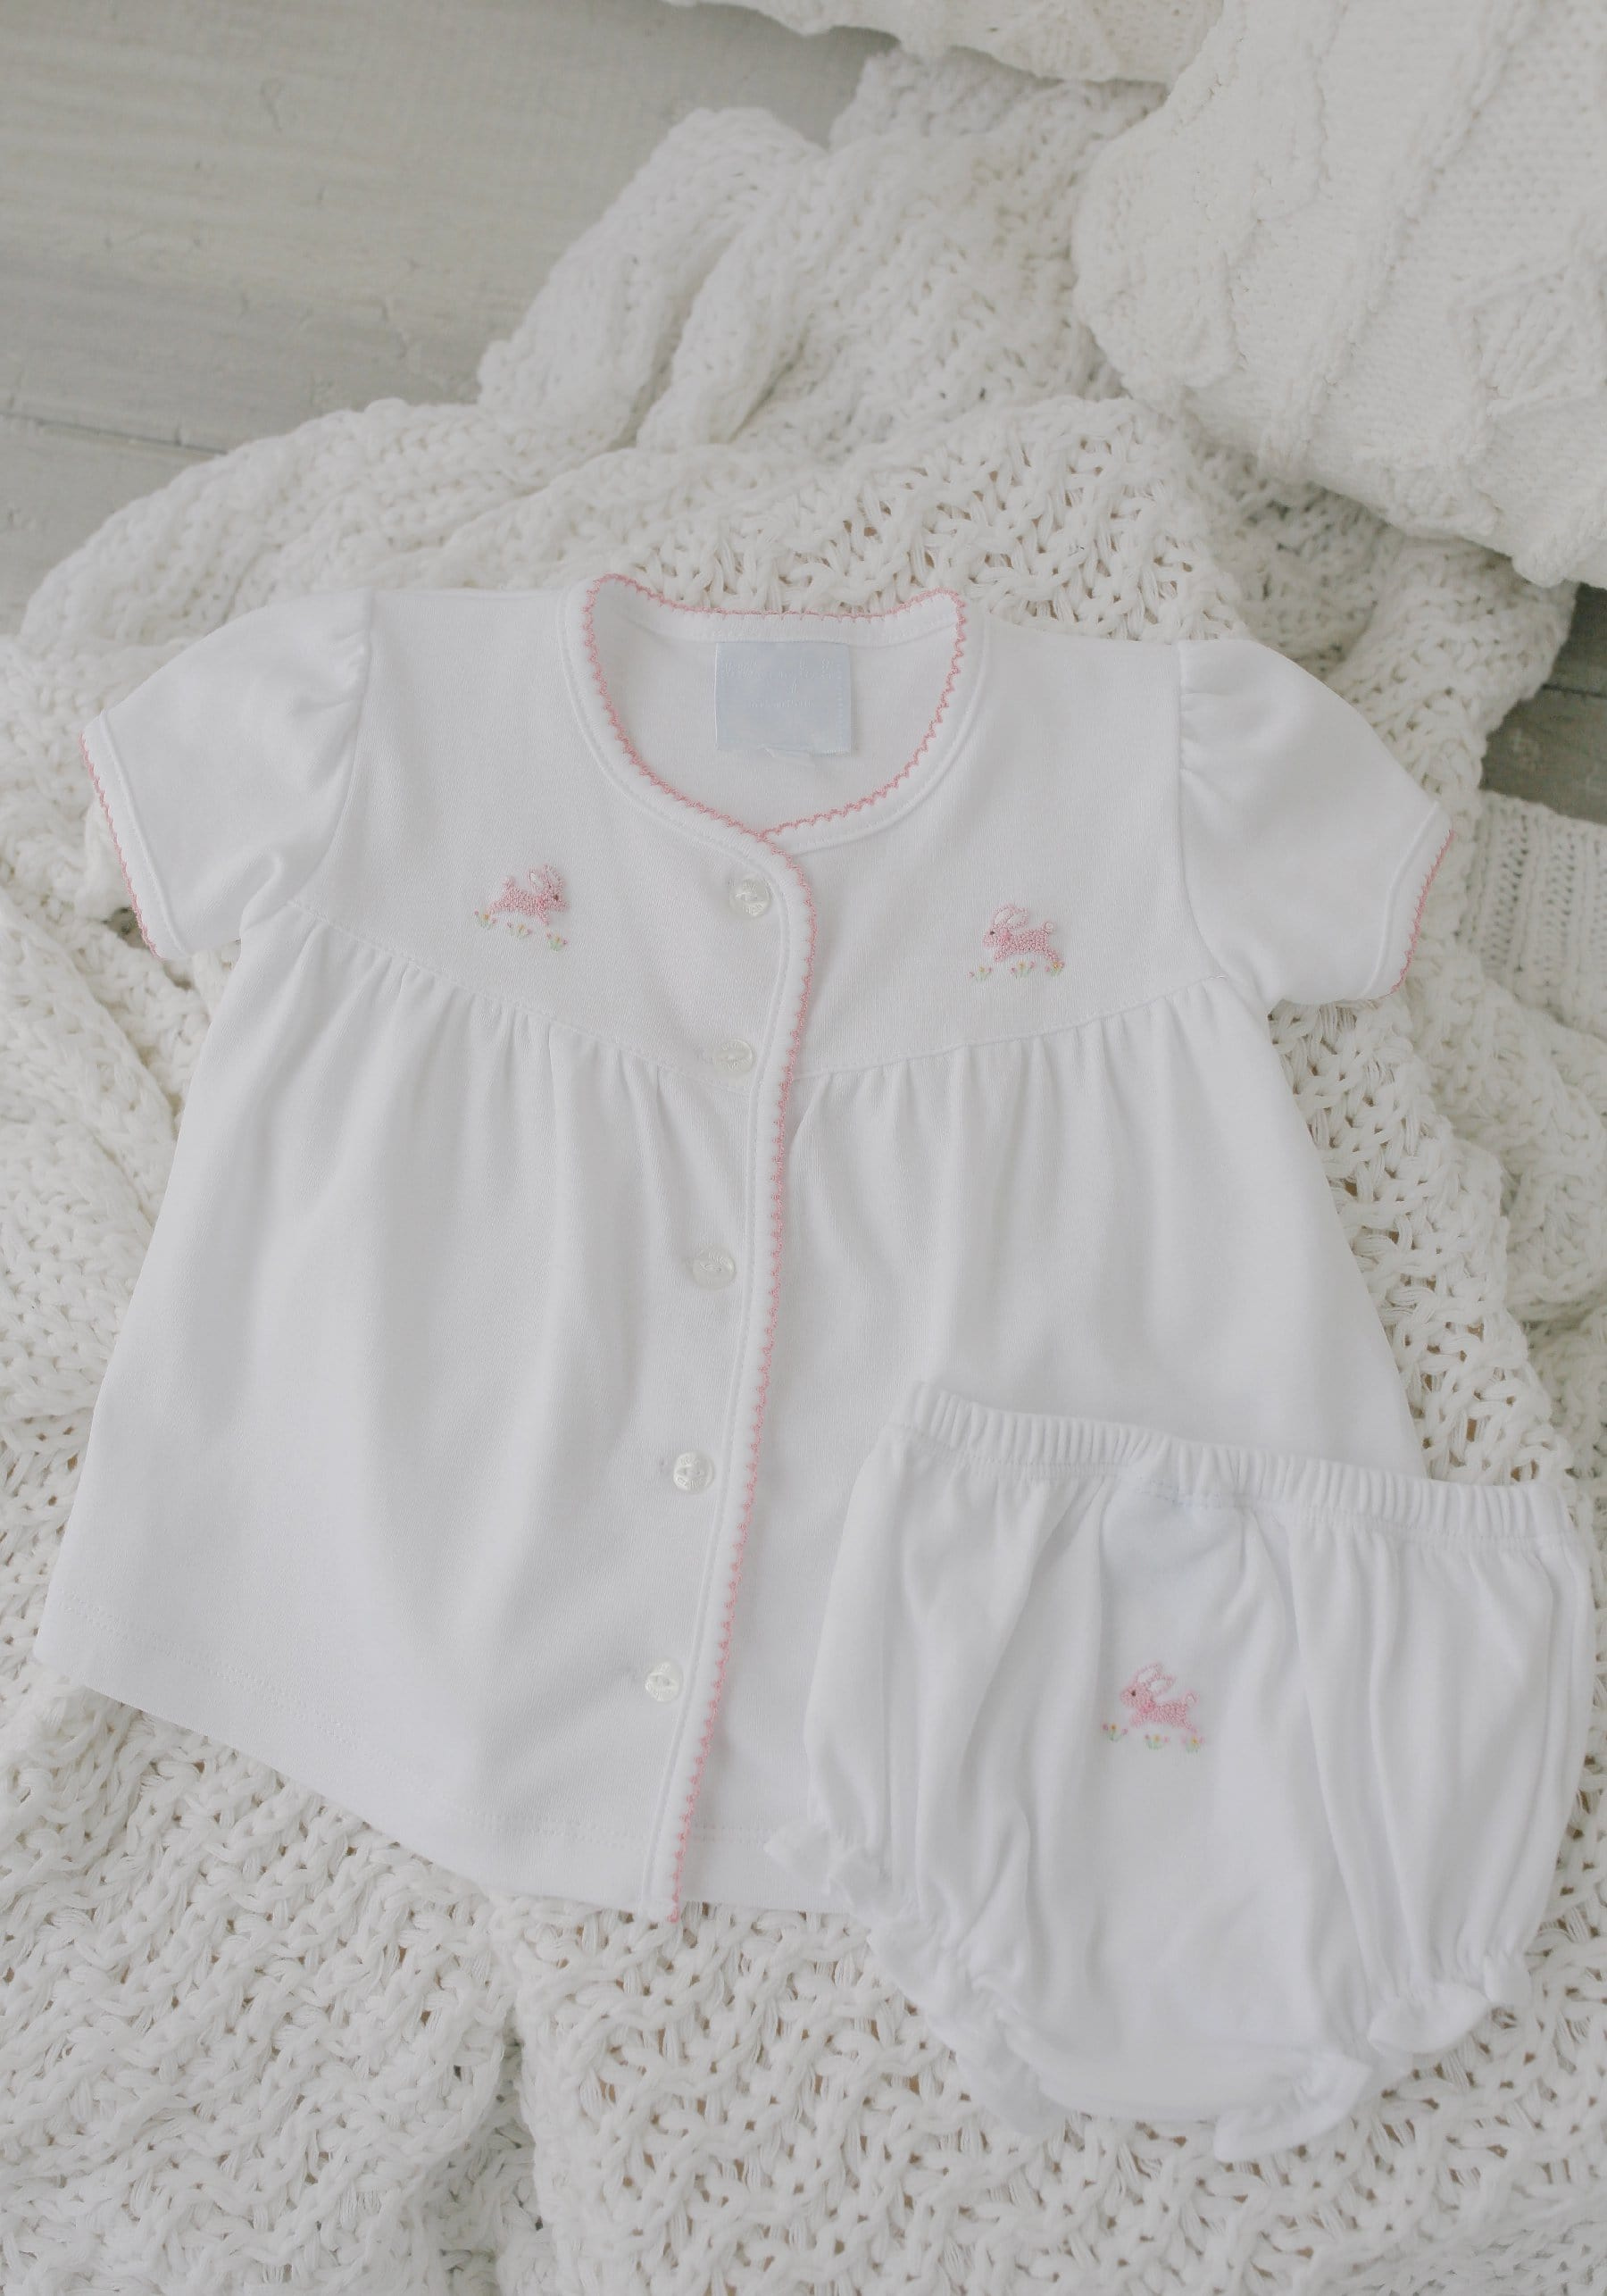 Pinpoint Layette Knit Set-Bunnies, Little English, Little English, classic children's clothing, preppy children's clothing, little English clothing, classic baby clothing, traditional children's clothing, children's clothing, baby clothing